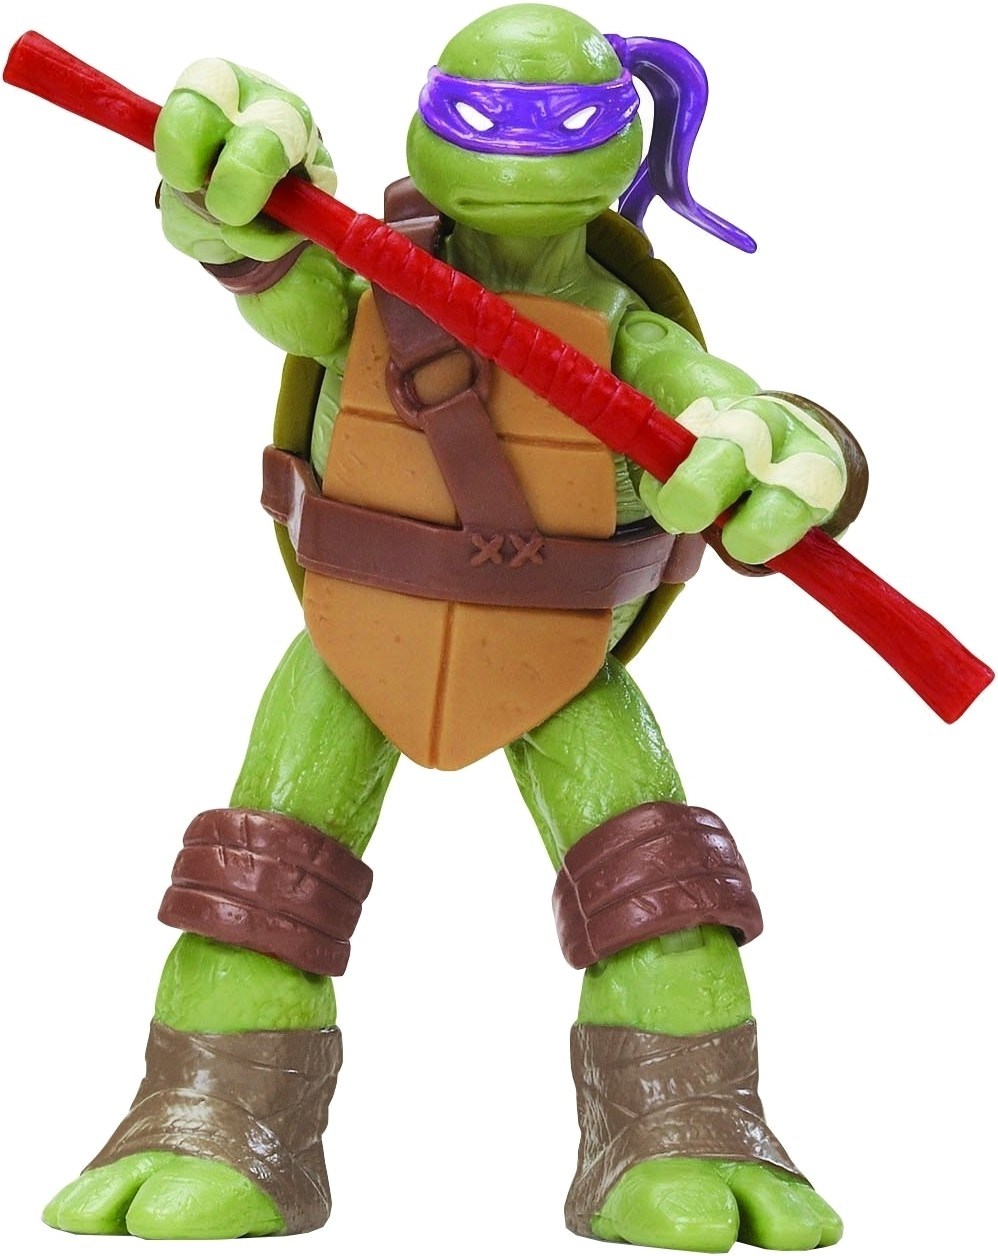 Teenage mutant ninja turtles nickelodeon donatello toy - photo#4